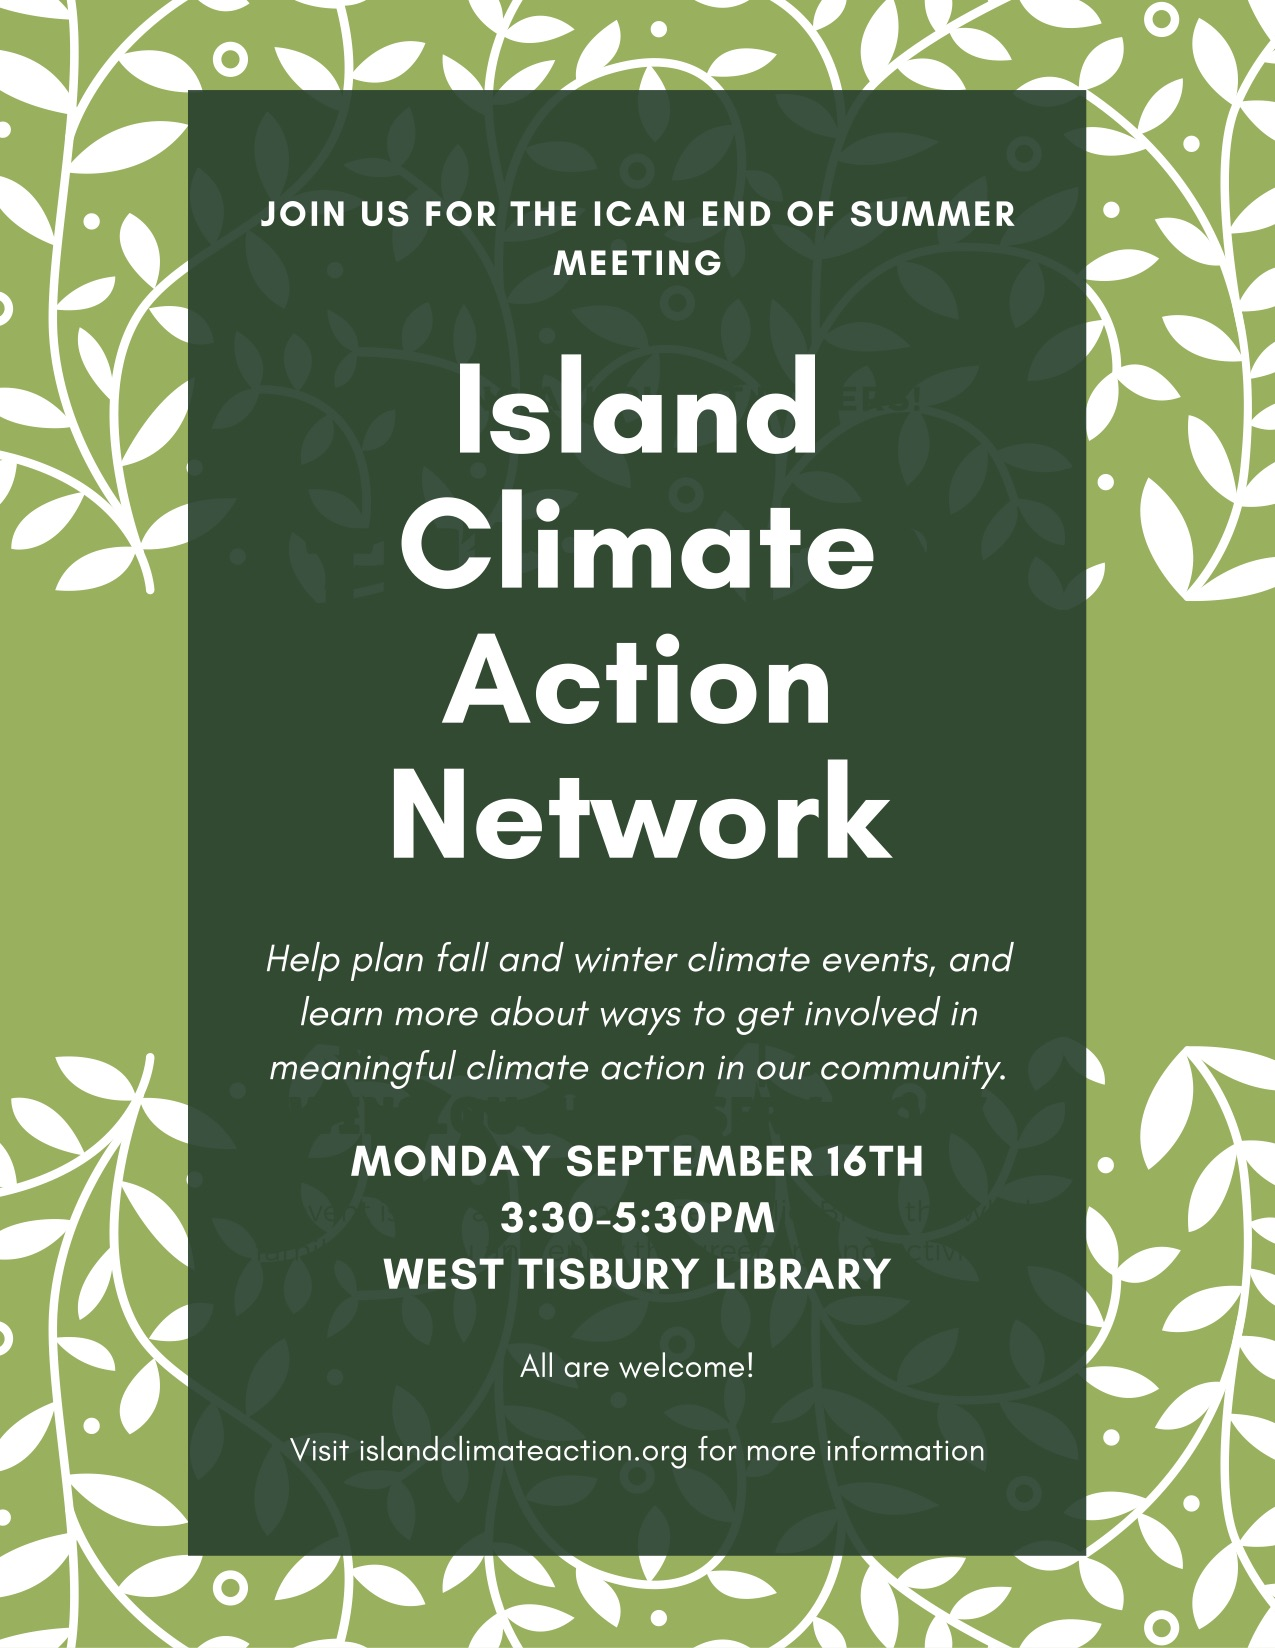 Island Climate Action Network Meeting